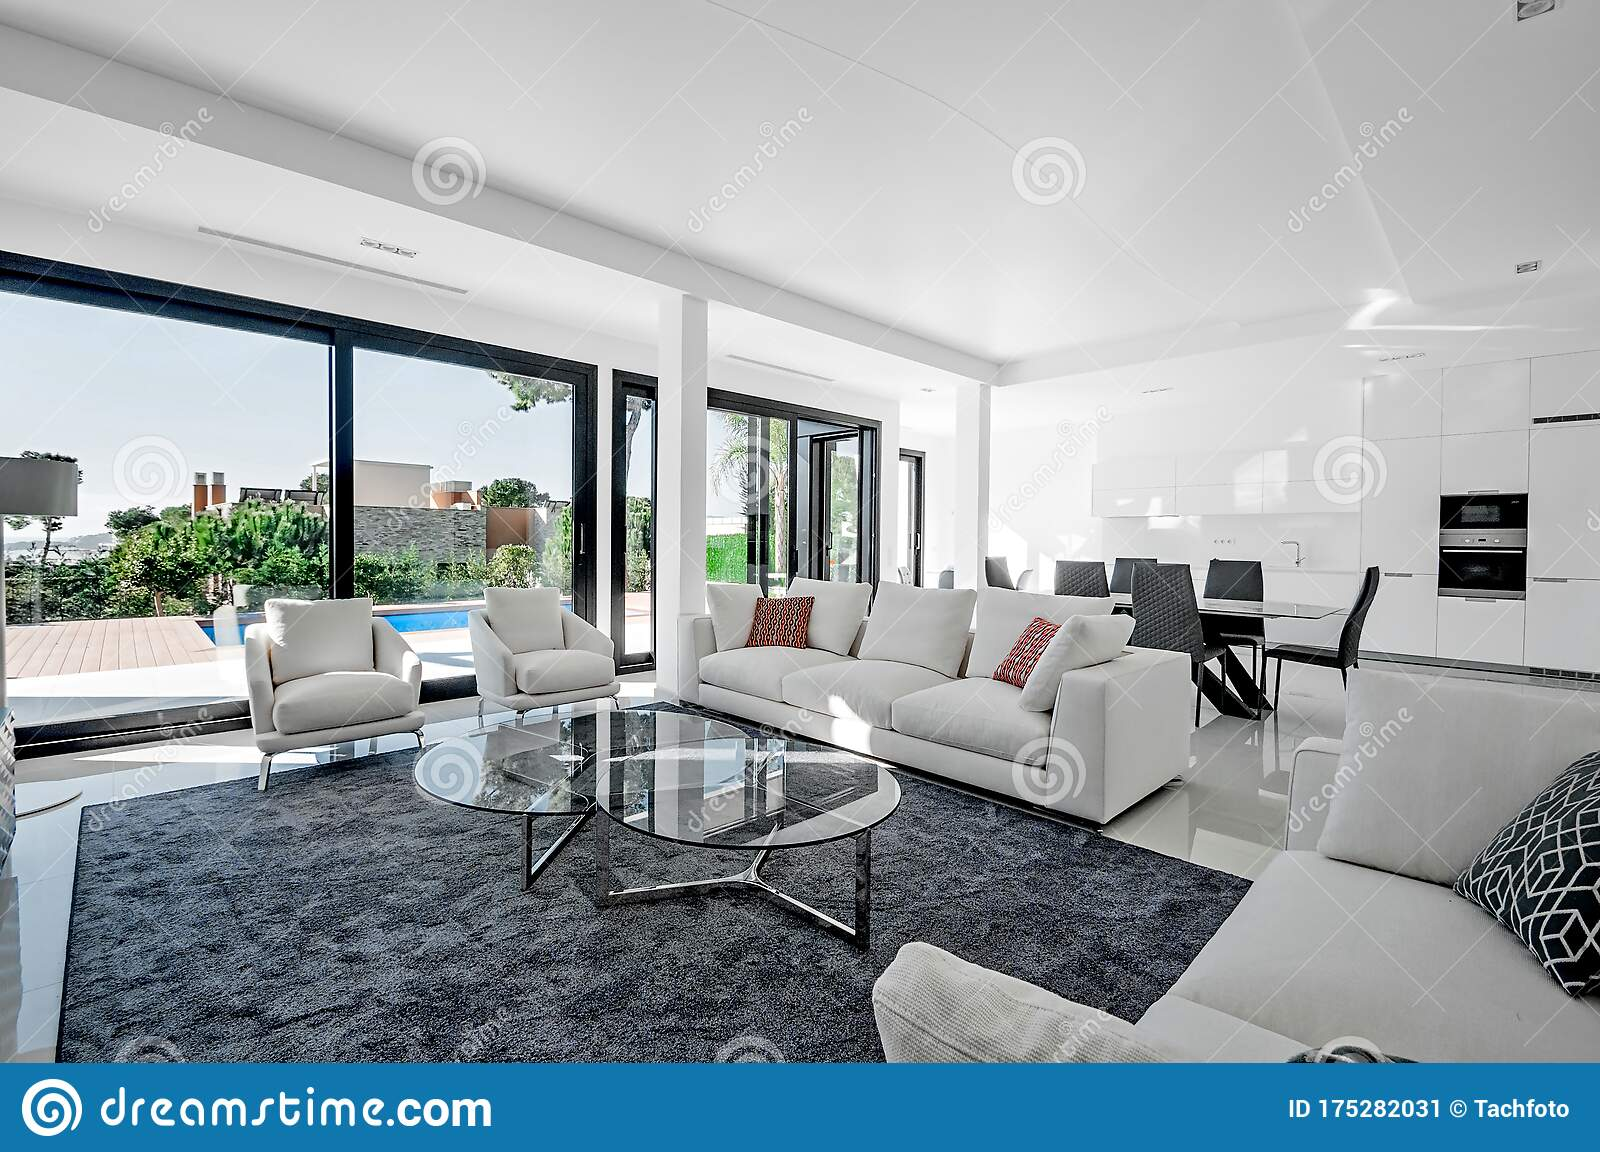 Luxurious And Modern Living Room Dining With Large Windows With Access To The Pool Luxurious Furniture Sofa Table And Chairs Stock Image Image Of House Luxurious 175282031